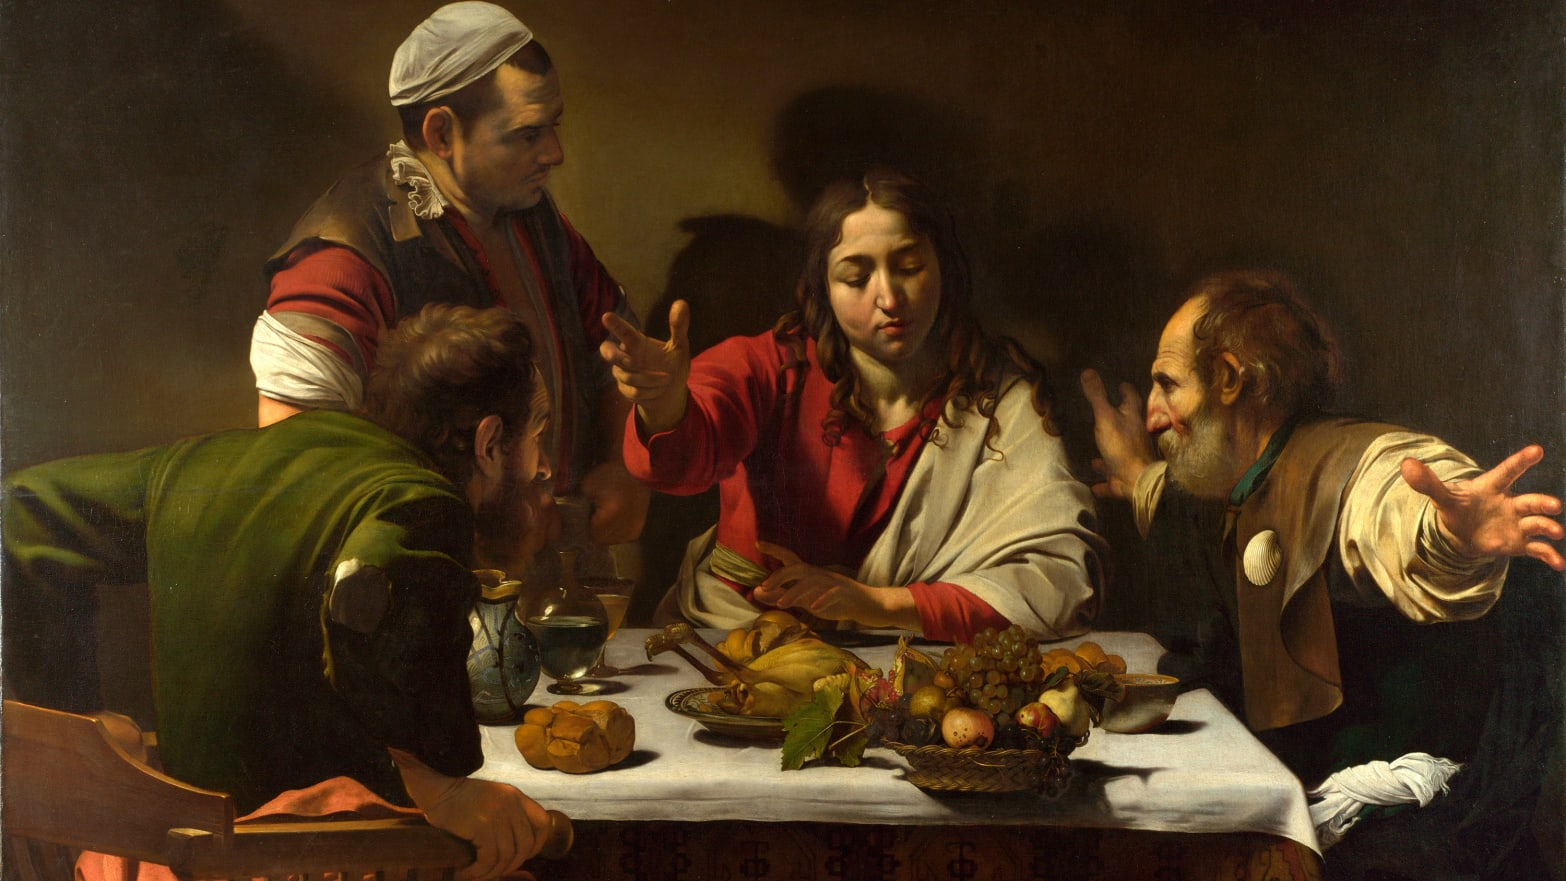 Emmaus: Have Archaeologists Discovered the Town Jesus Appeared in After His Resurrection?